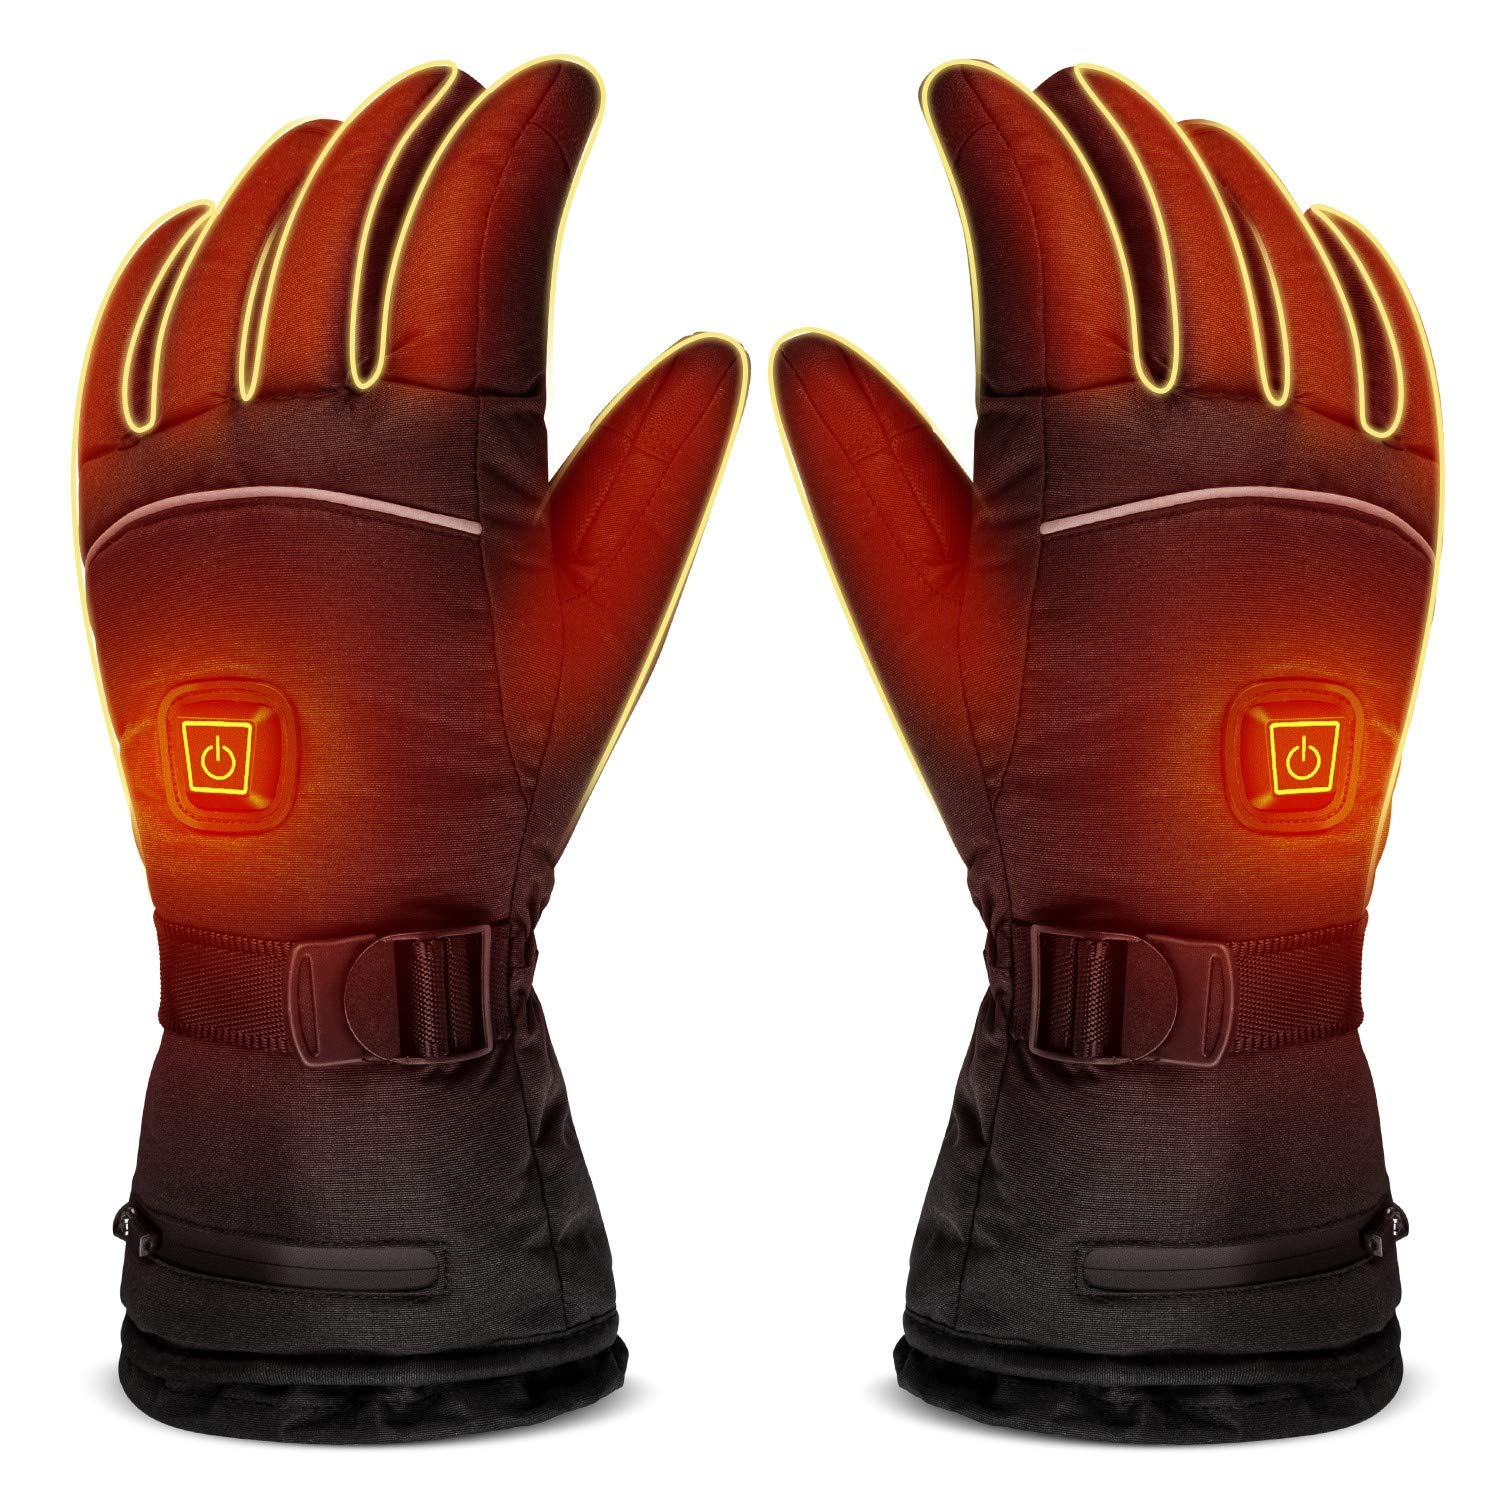 LUWATT Heated Gloves 8H Working Hours 3500mAh Rechargeable Battery Three Temperature Settings Electric Heat Resistant Gloves for Men Women for Sports Outdoor Climbing Hiking Skiing Winter Handwarmer by LUWATT